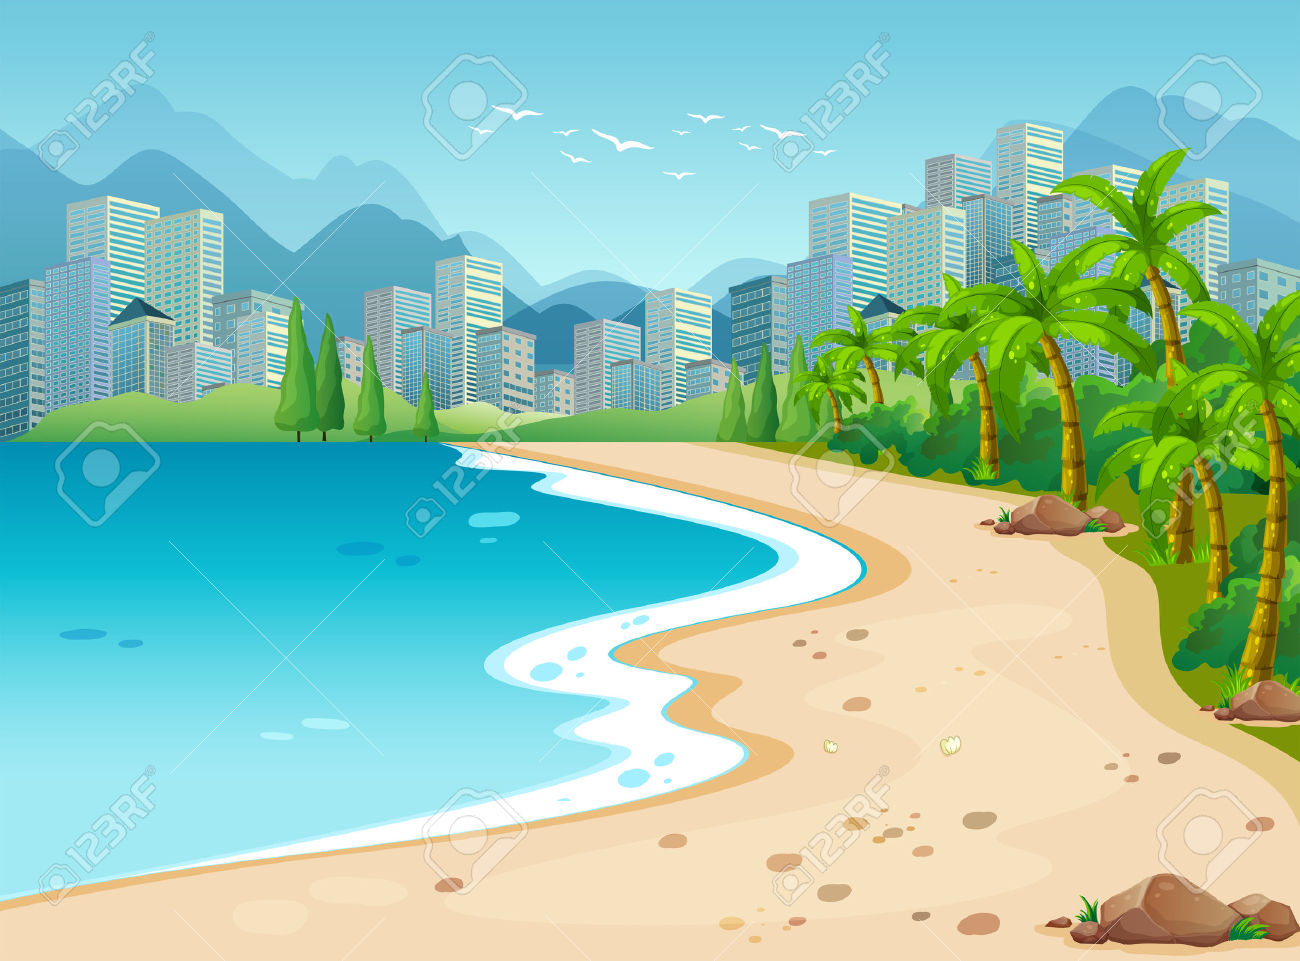 Ocean Scene With City Background Royalty Free Cliparts, Vectors.